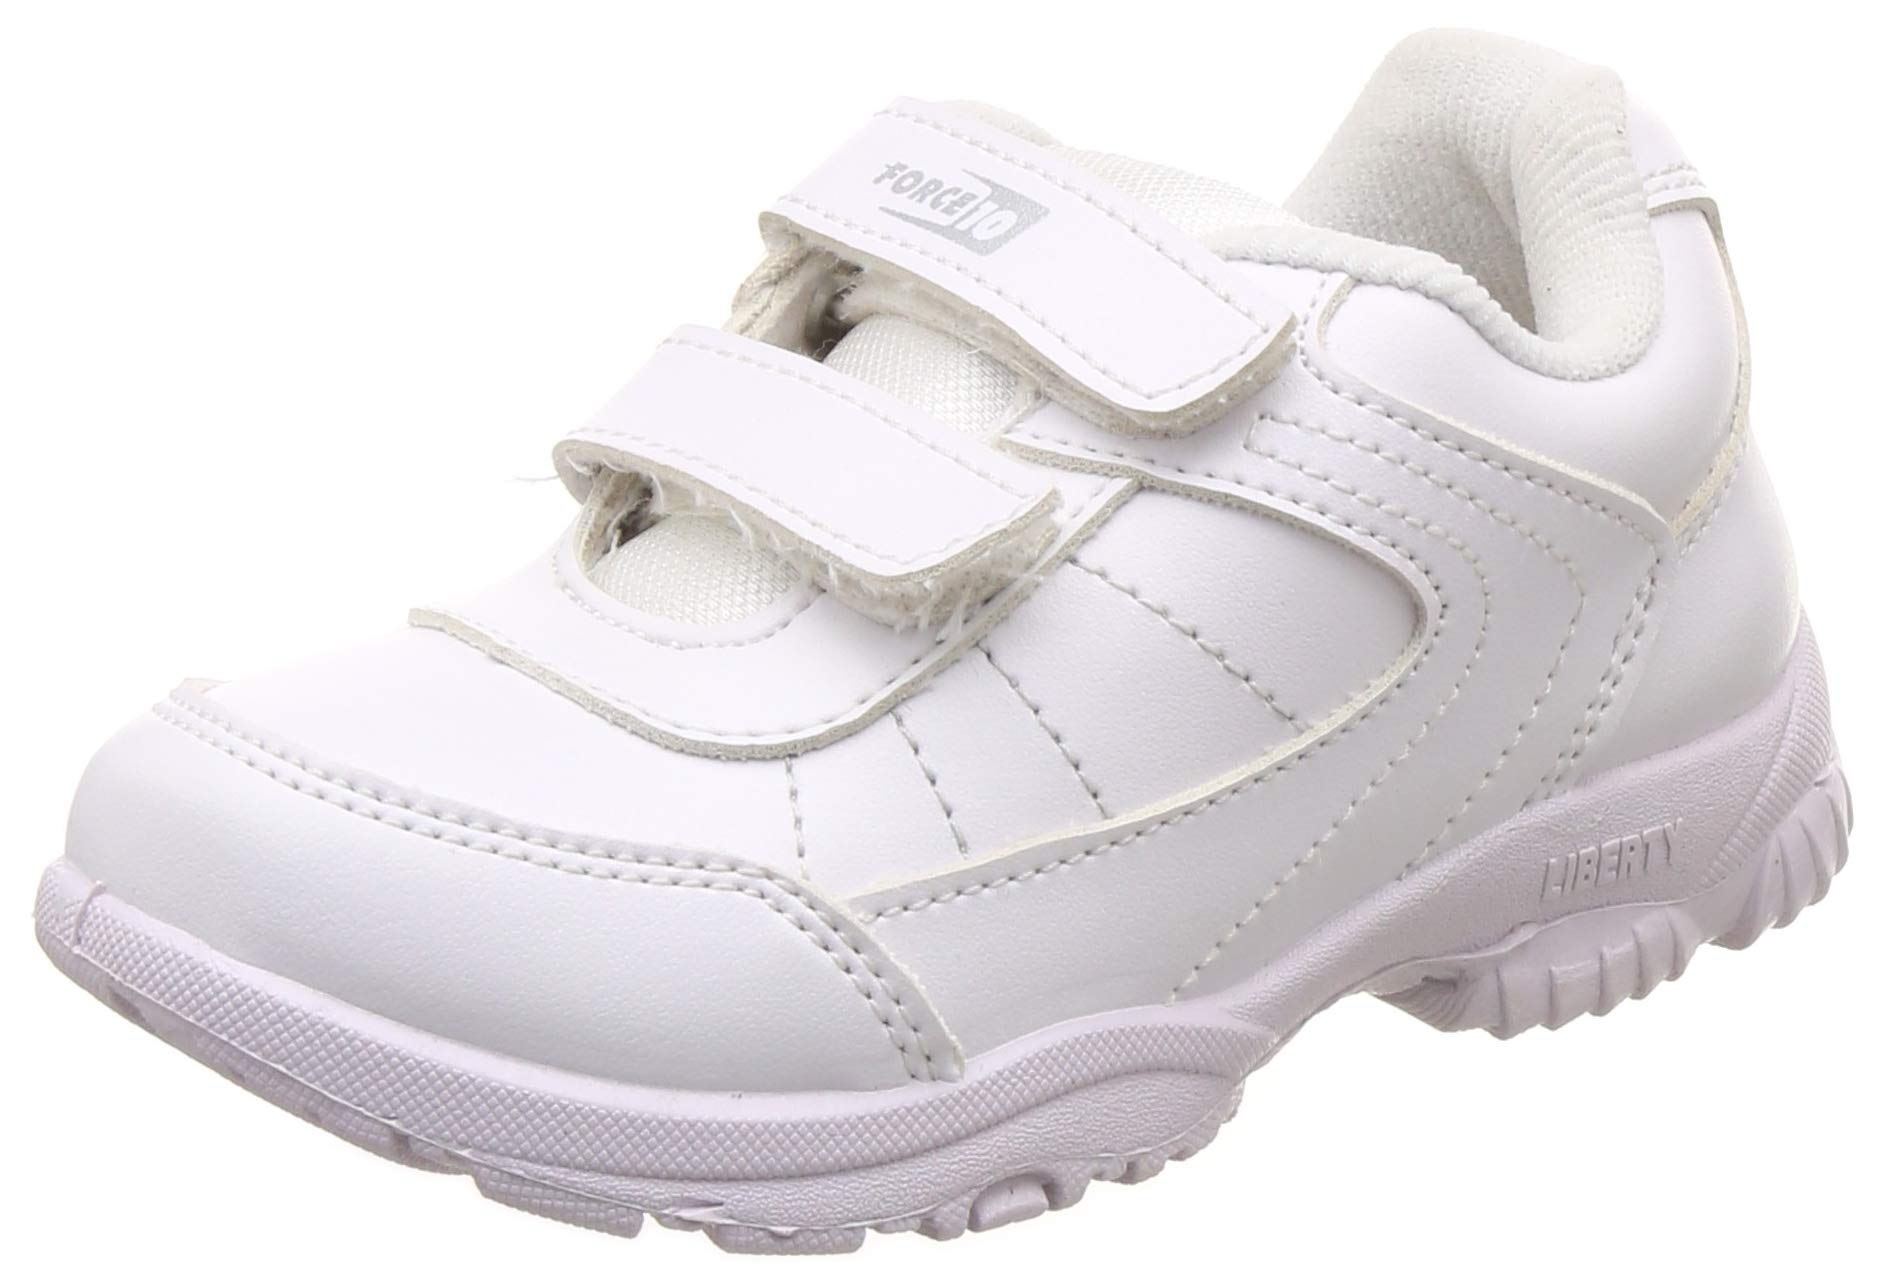 Liberty Schzone DV School Shoes for